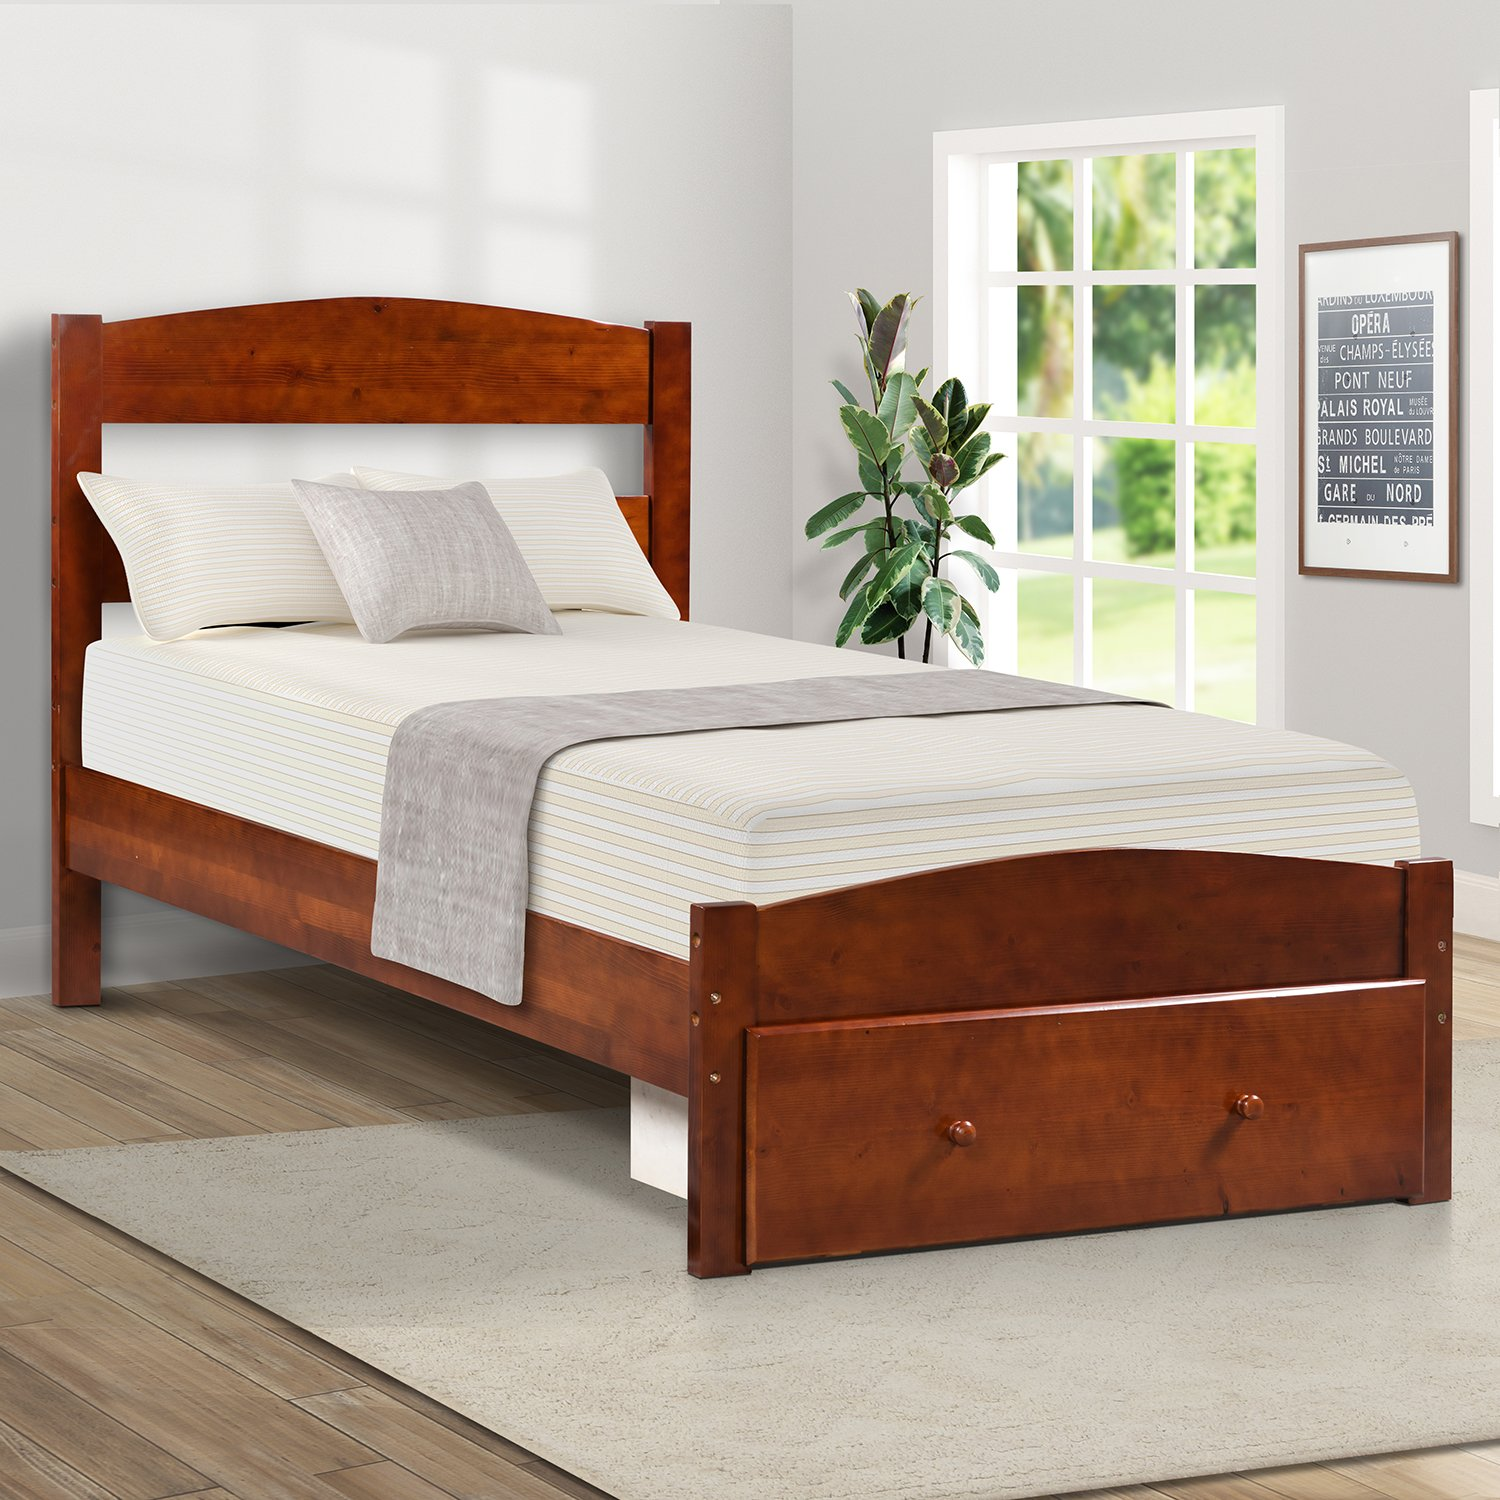 Merax Wood Platform Bed Frame with Storage and Headboard, Wooden Bed Frame, Twin Walnut